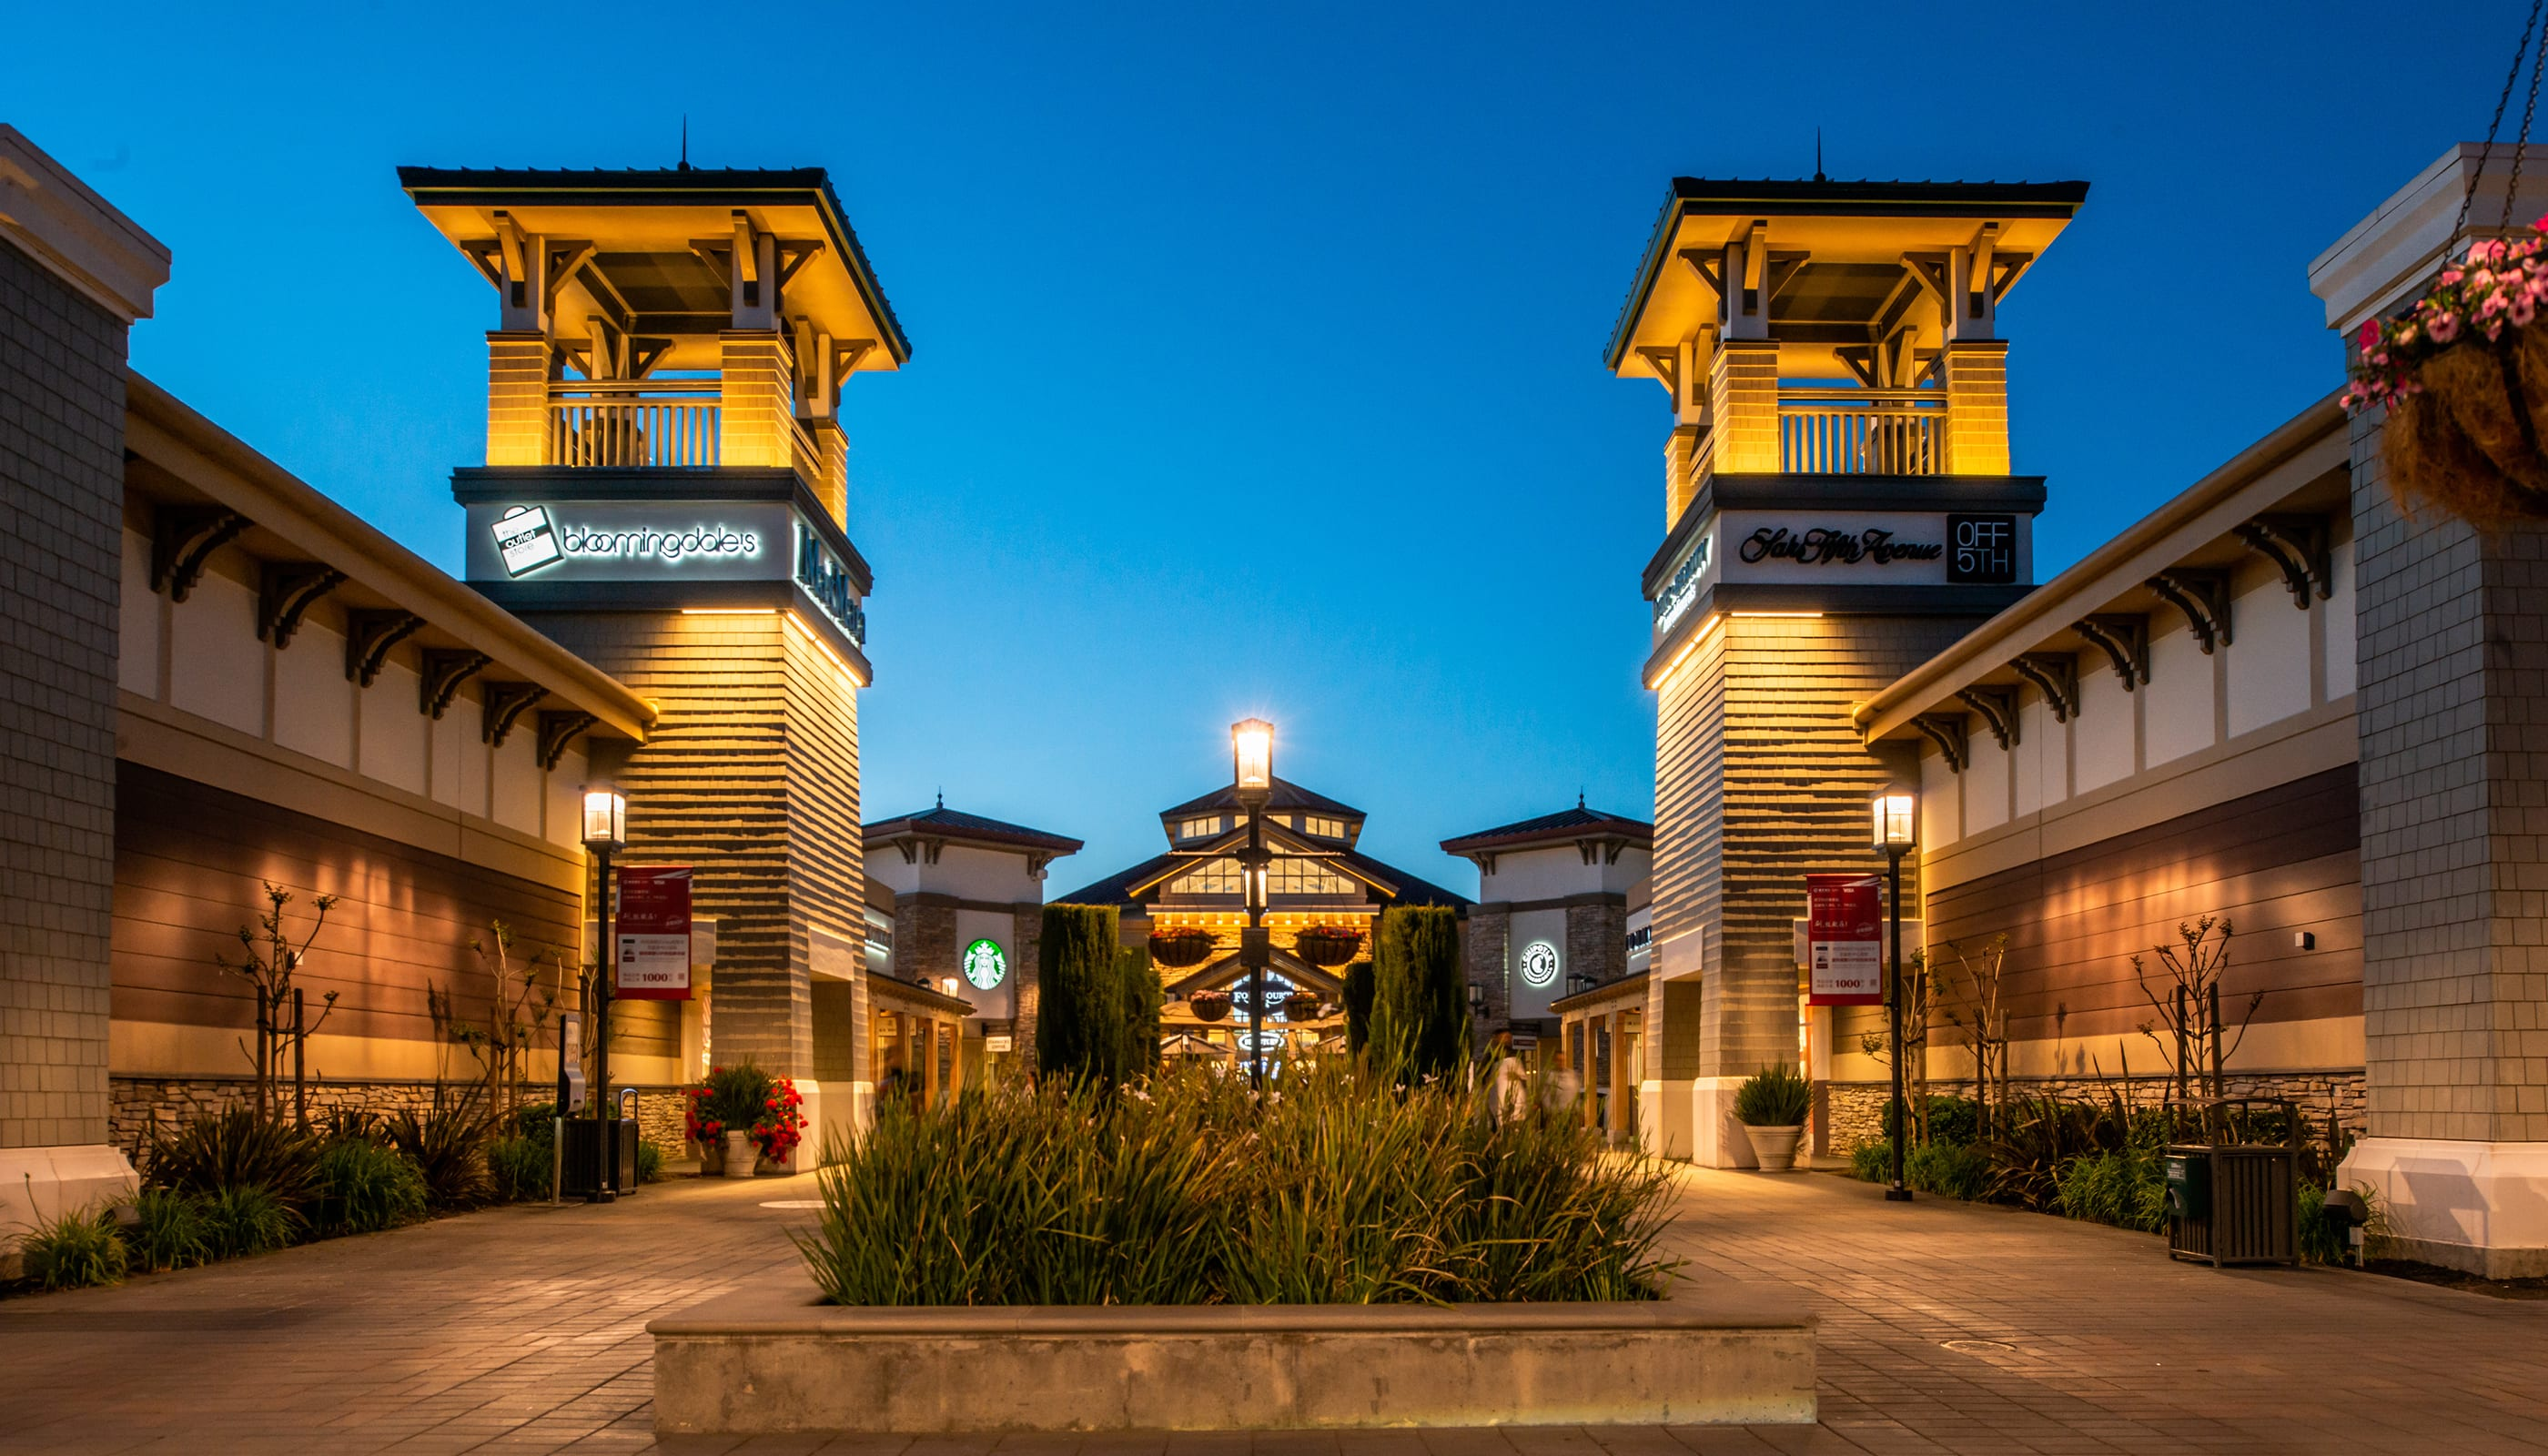 San Francisco Premium Outlets - Architects Near Me